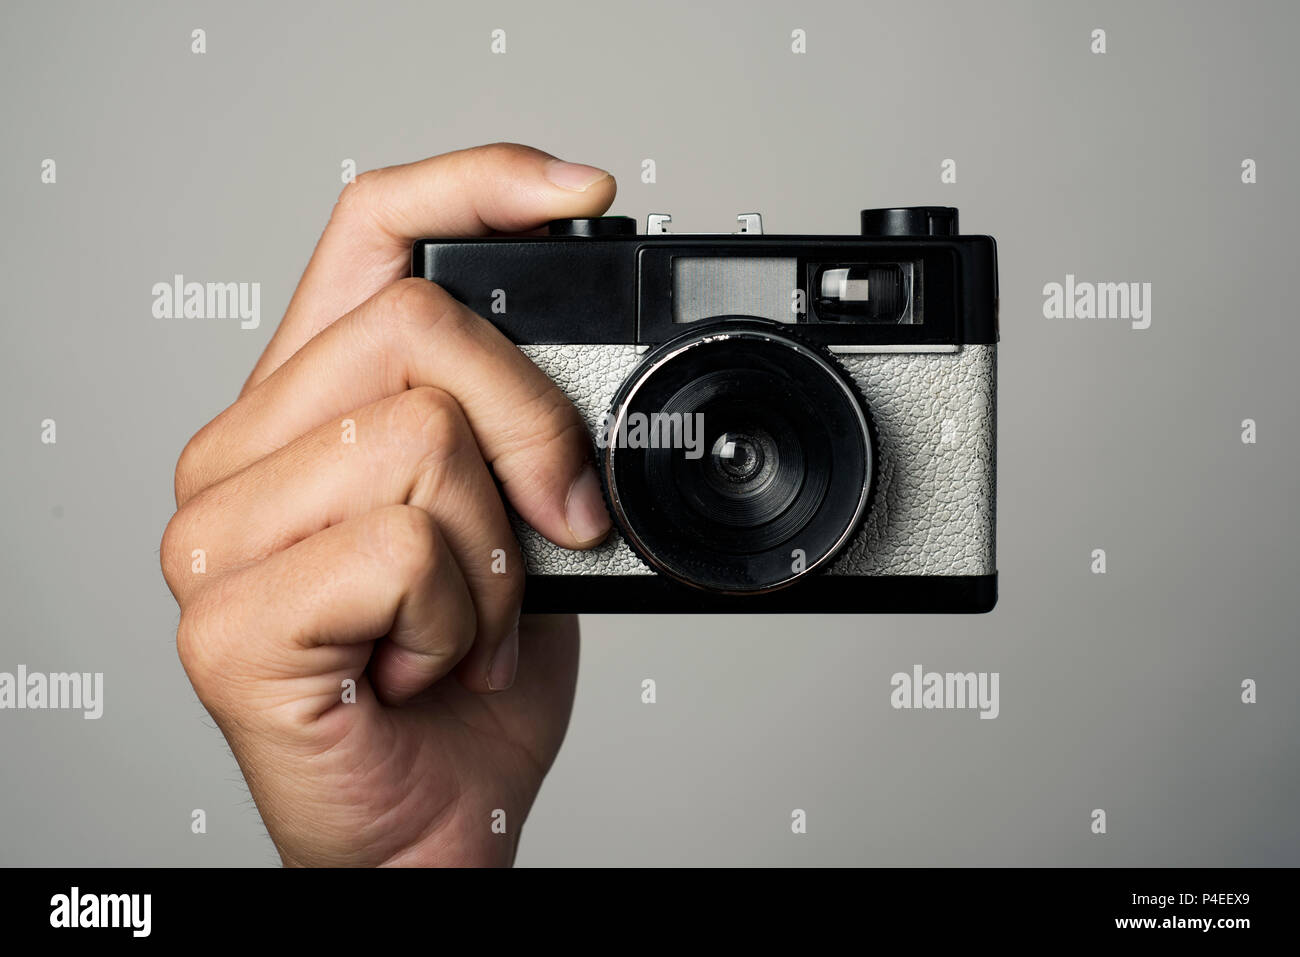 closeup of a caucasian man with a retro film camera in his hand, pointing to the obserever, about to press the shutter button, against an off-white ba - Stock Image